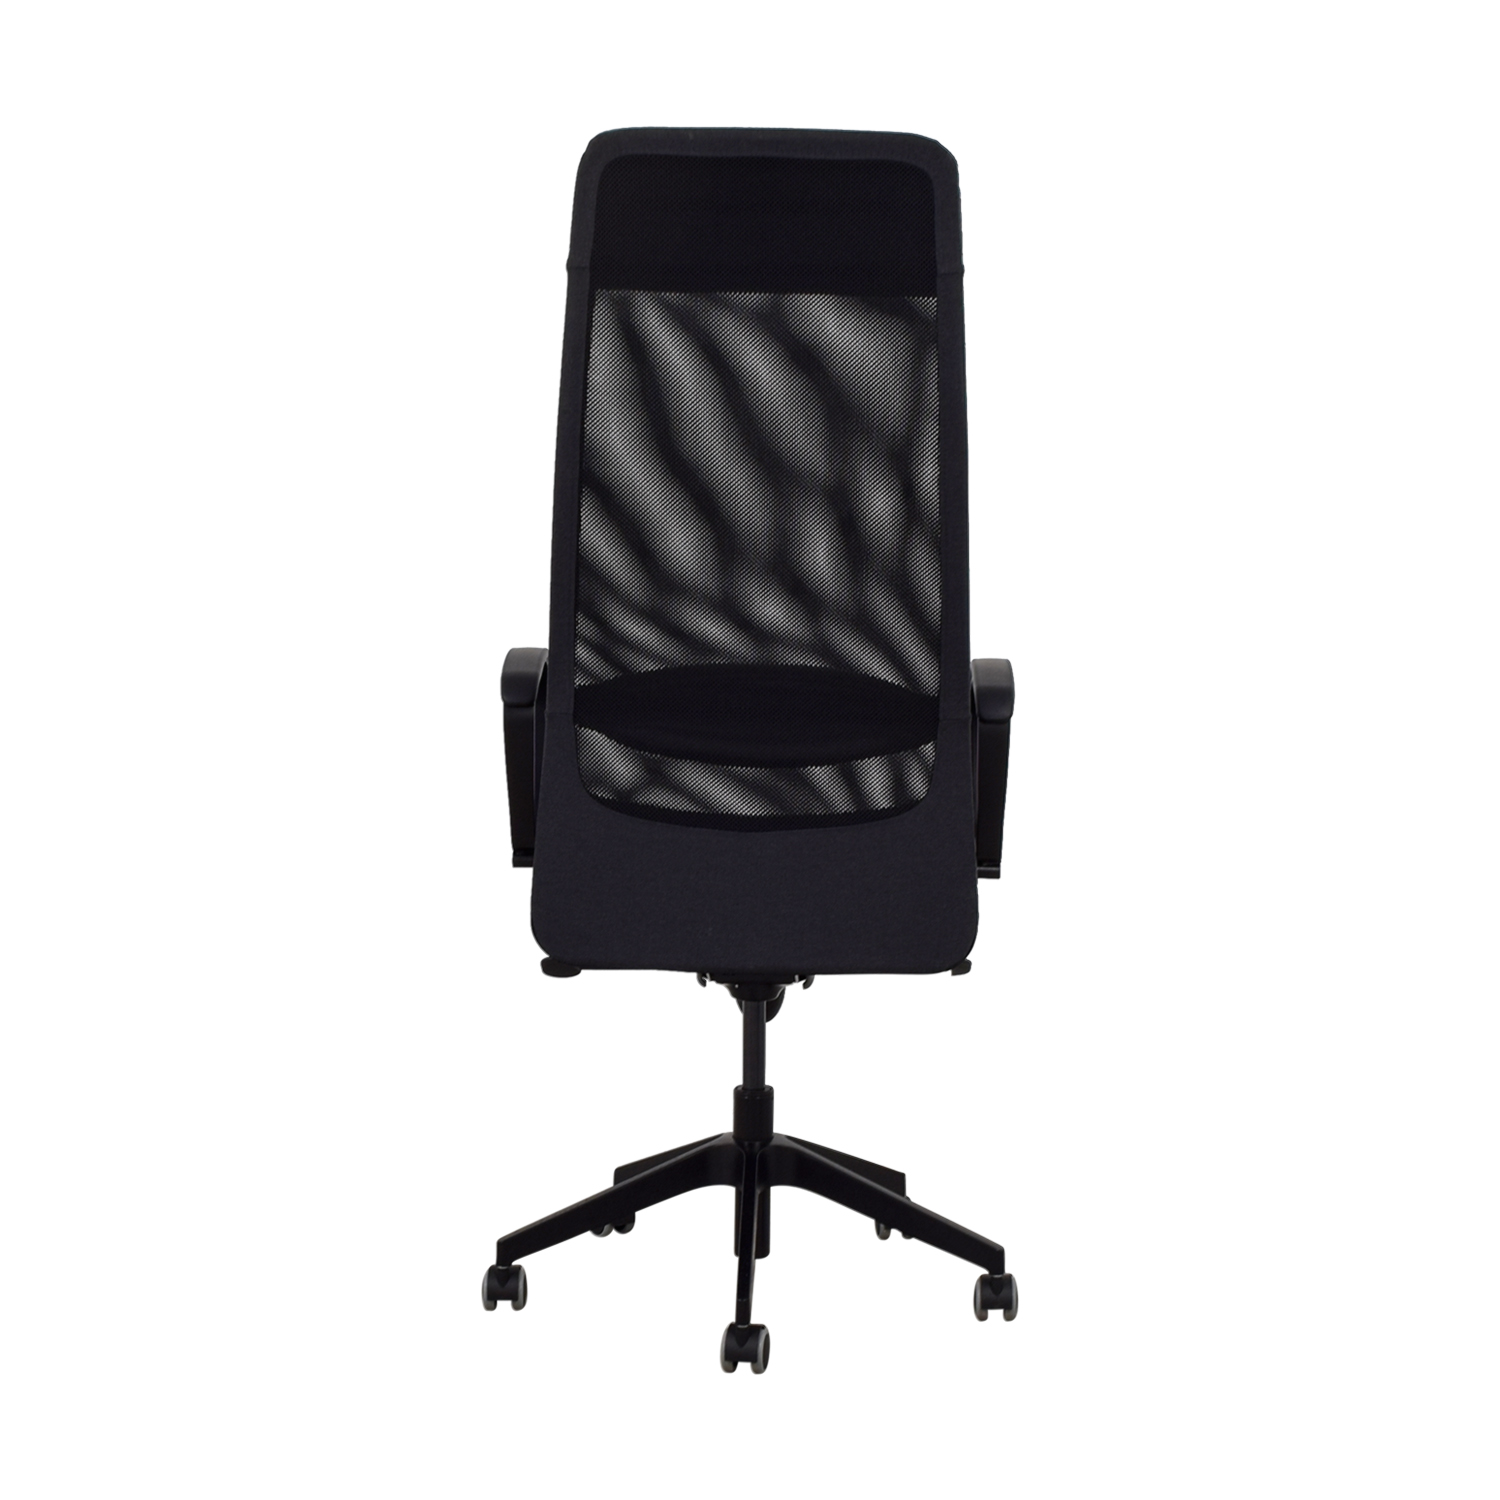 68 Off Ikea Ikea Black Office Chair Chairs